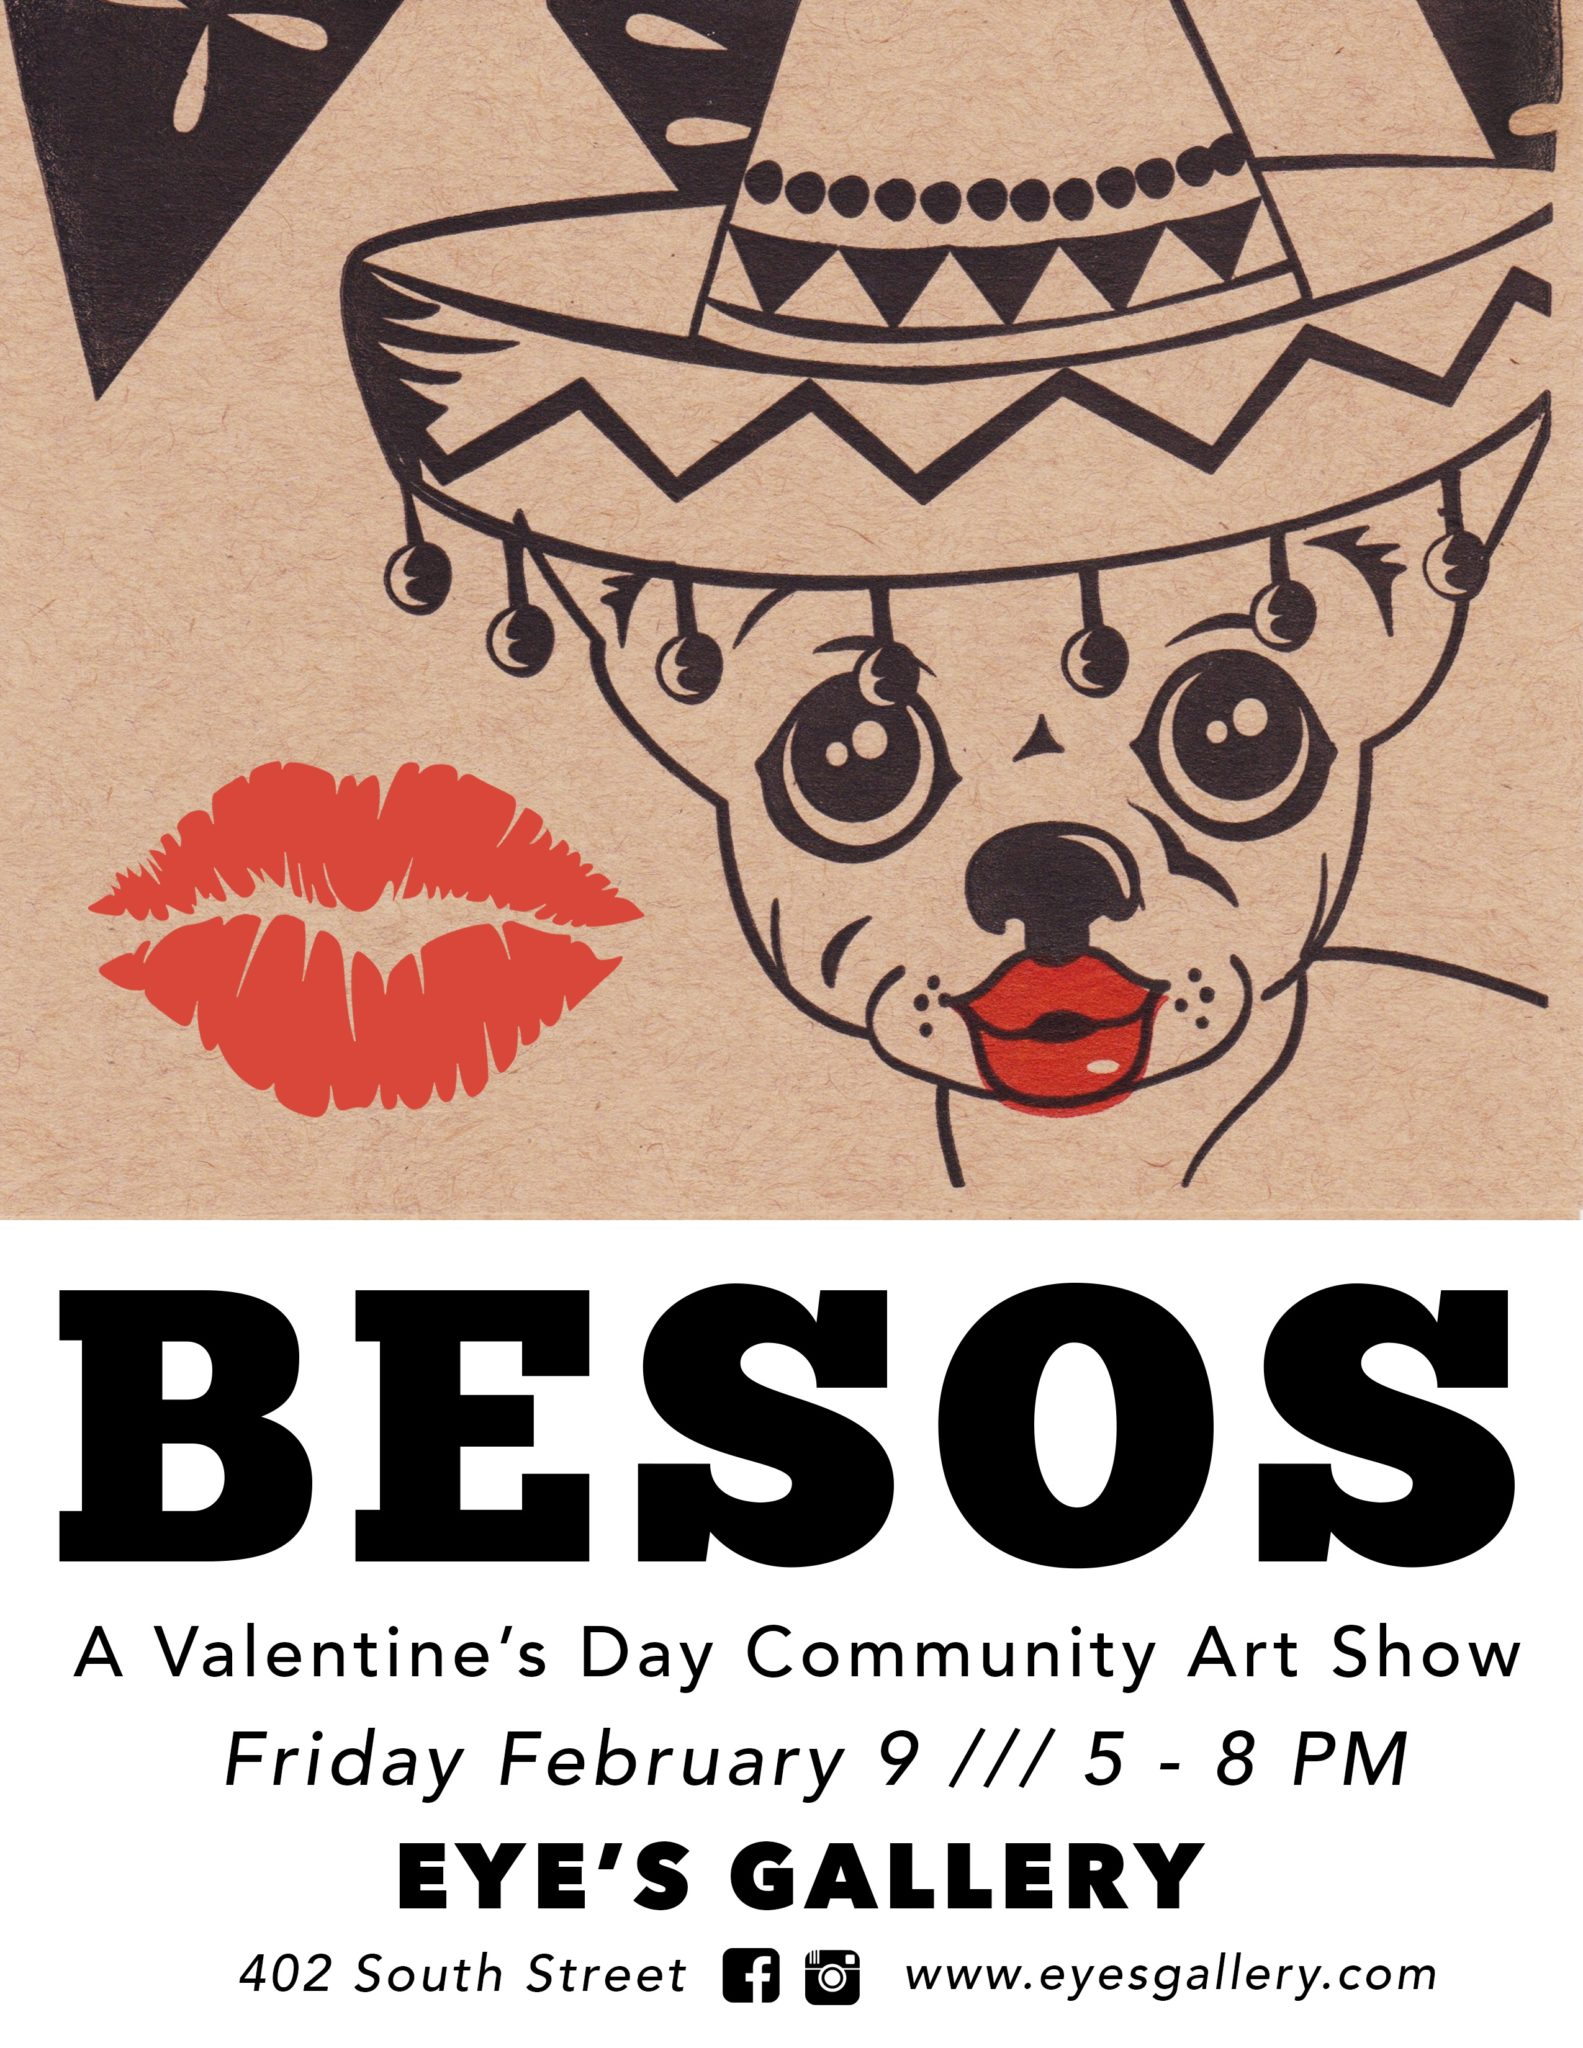 Besos: A Valentine's Day Community Art Show